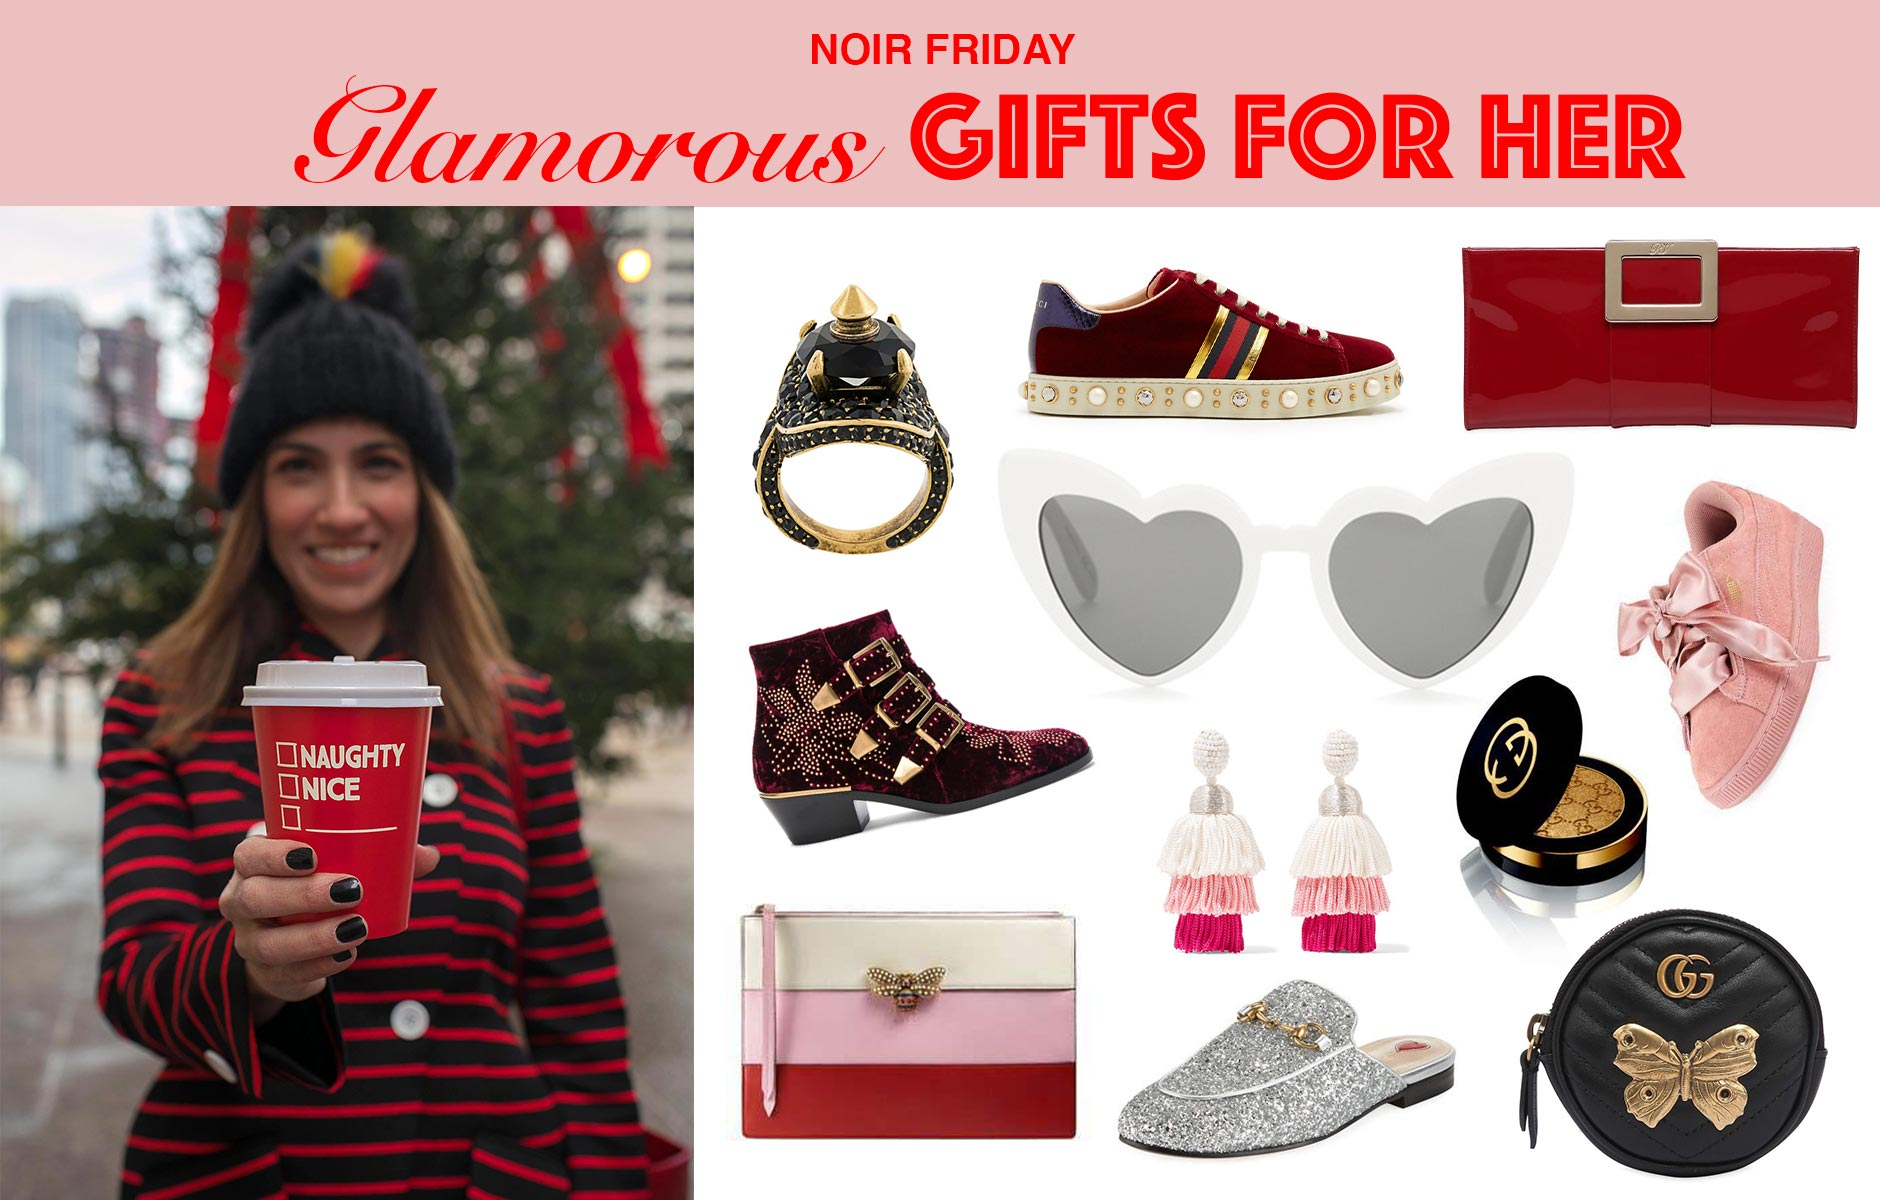 Anna Roufos Sosa of Noir Friday picks the most glamorous gifts for her.